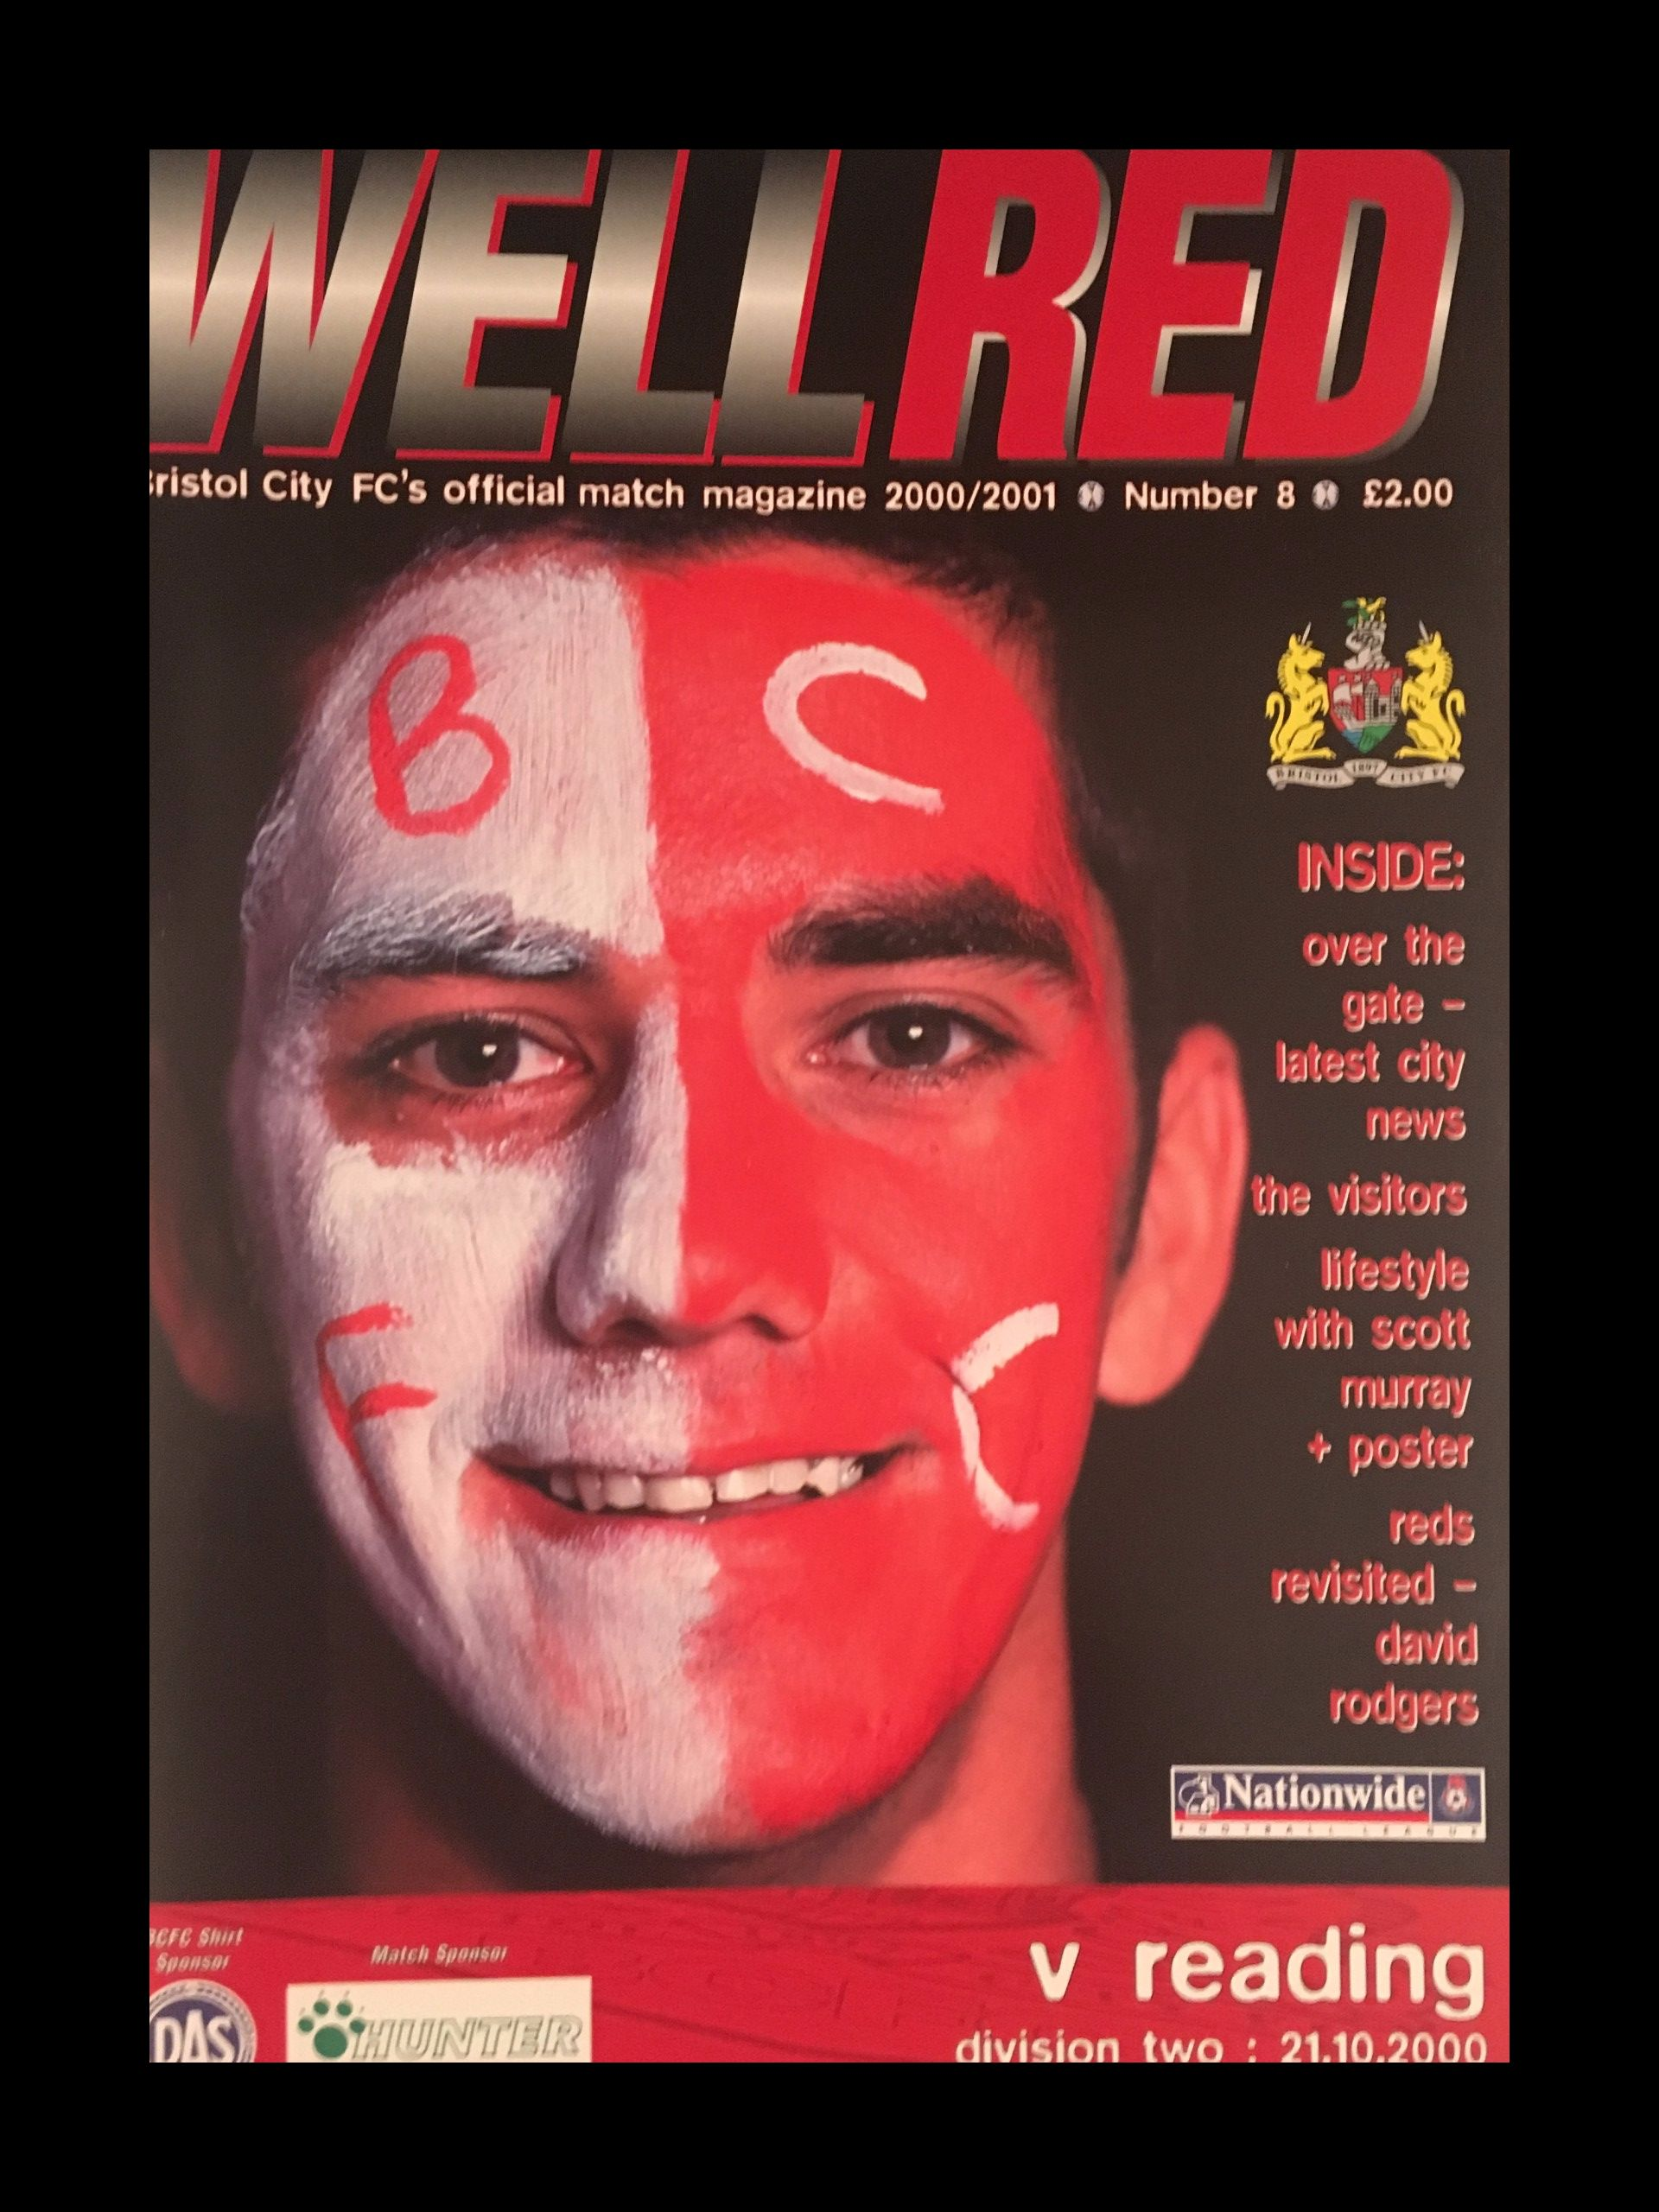 Bristol City v Reading 21-10-2000 Programme